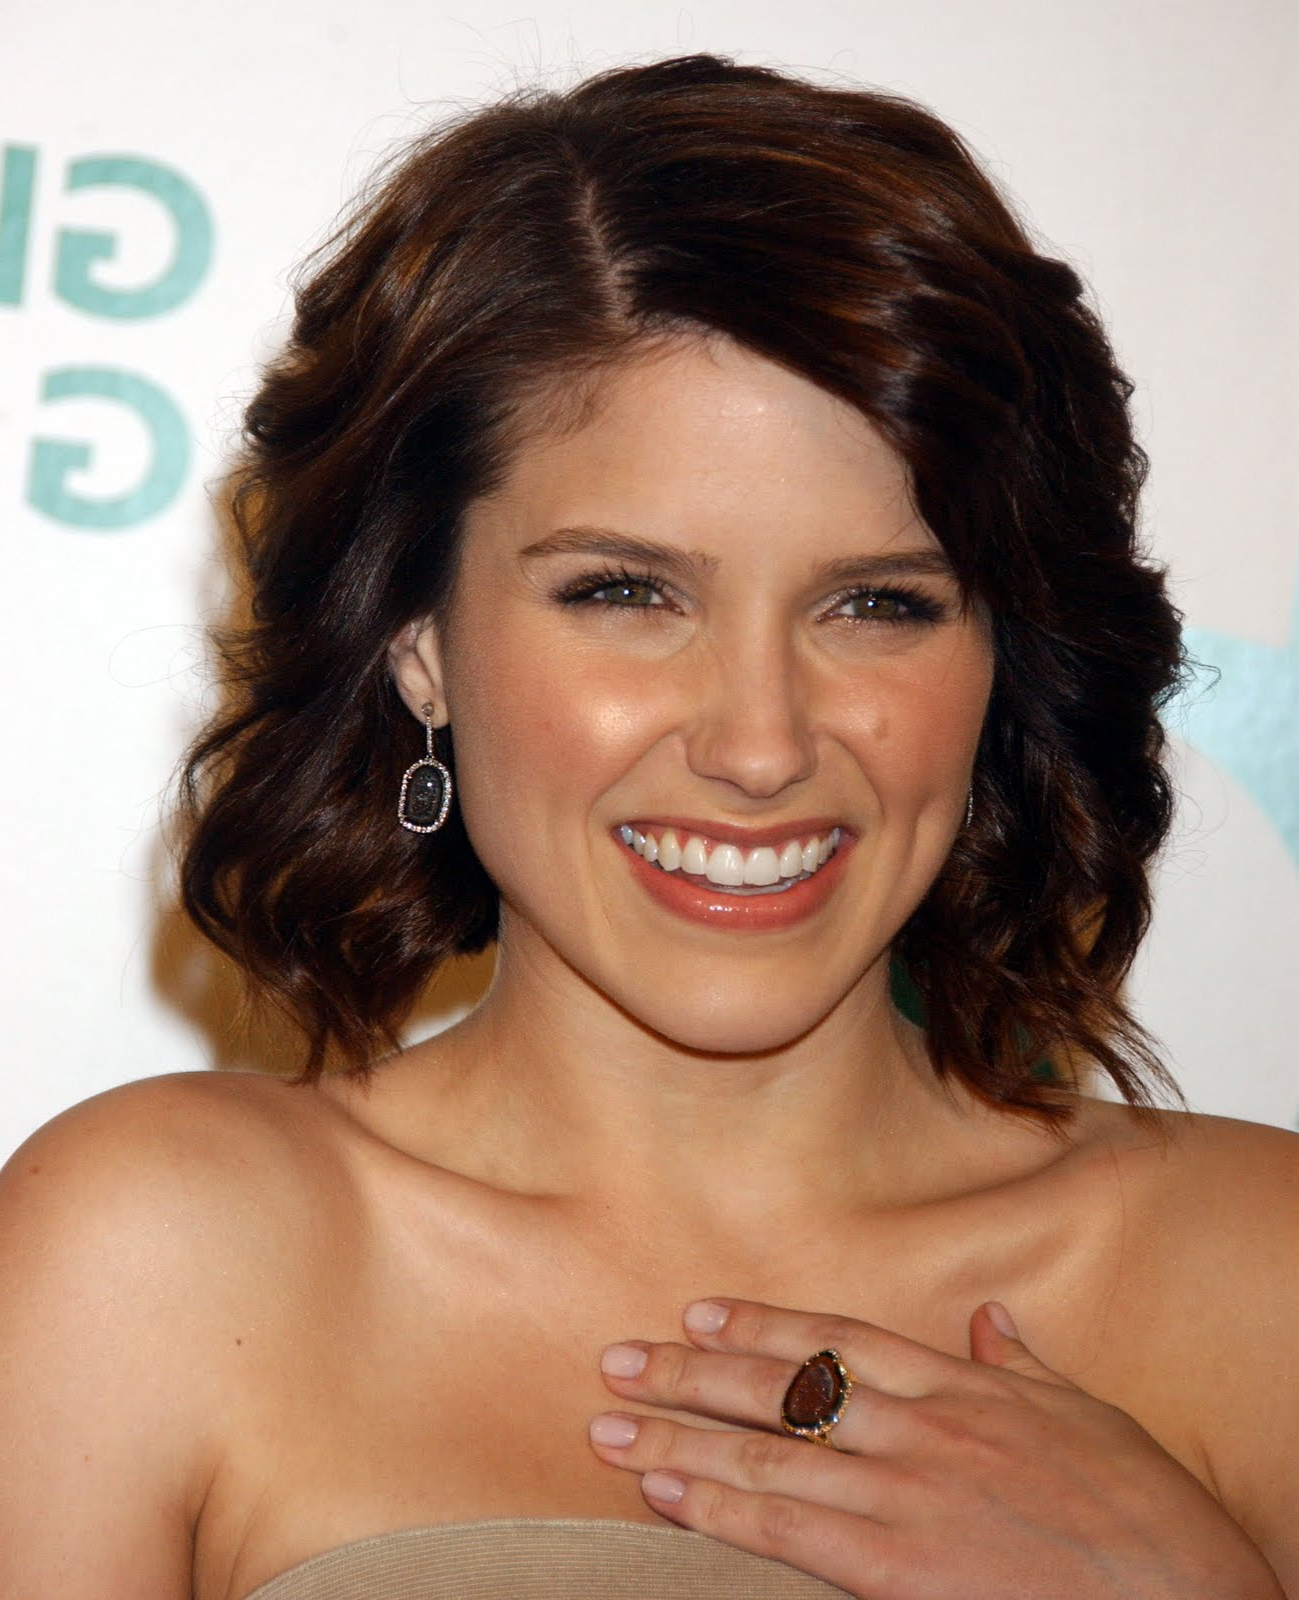 Hairstyles, Braids And Hair Style Ideas: Sophia Bush Hairstyles 2009 Within Sophia Bush Short Hairstyles (View 3 of 25)